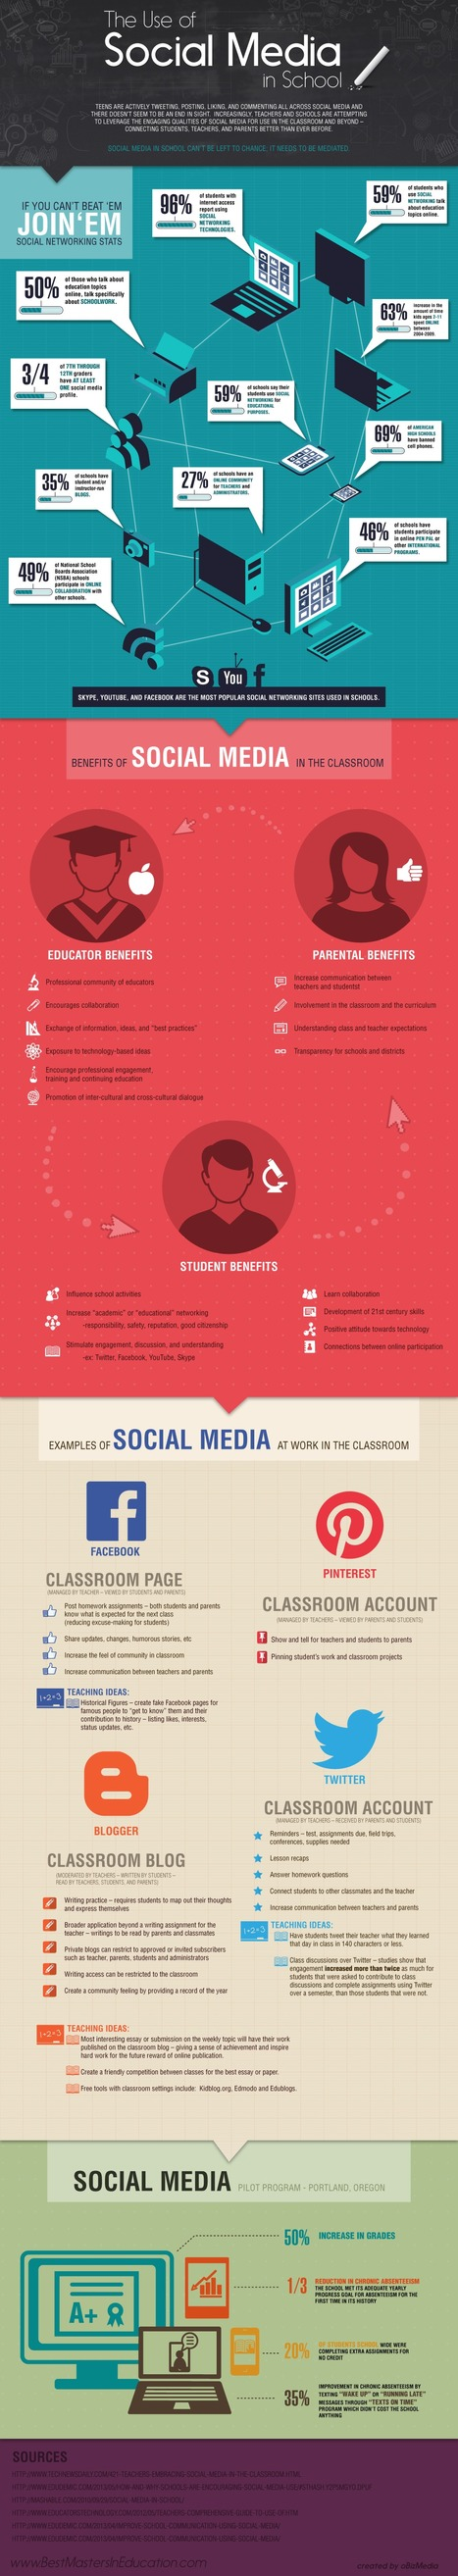 Social Media 101: Is There a Place For Social Media in Classrooms? [Infographic] | Teachers | Scoop.it